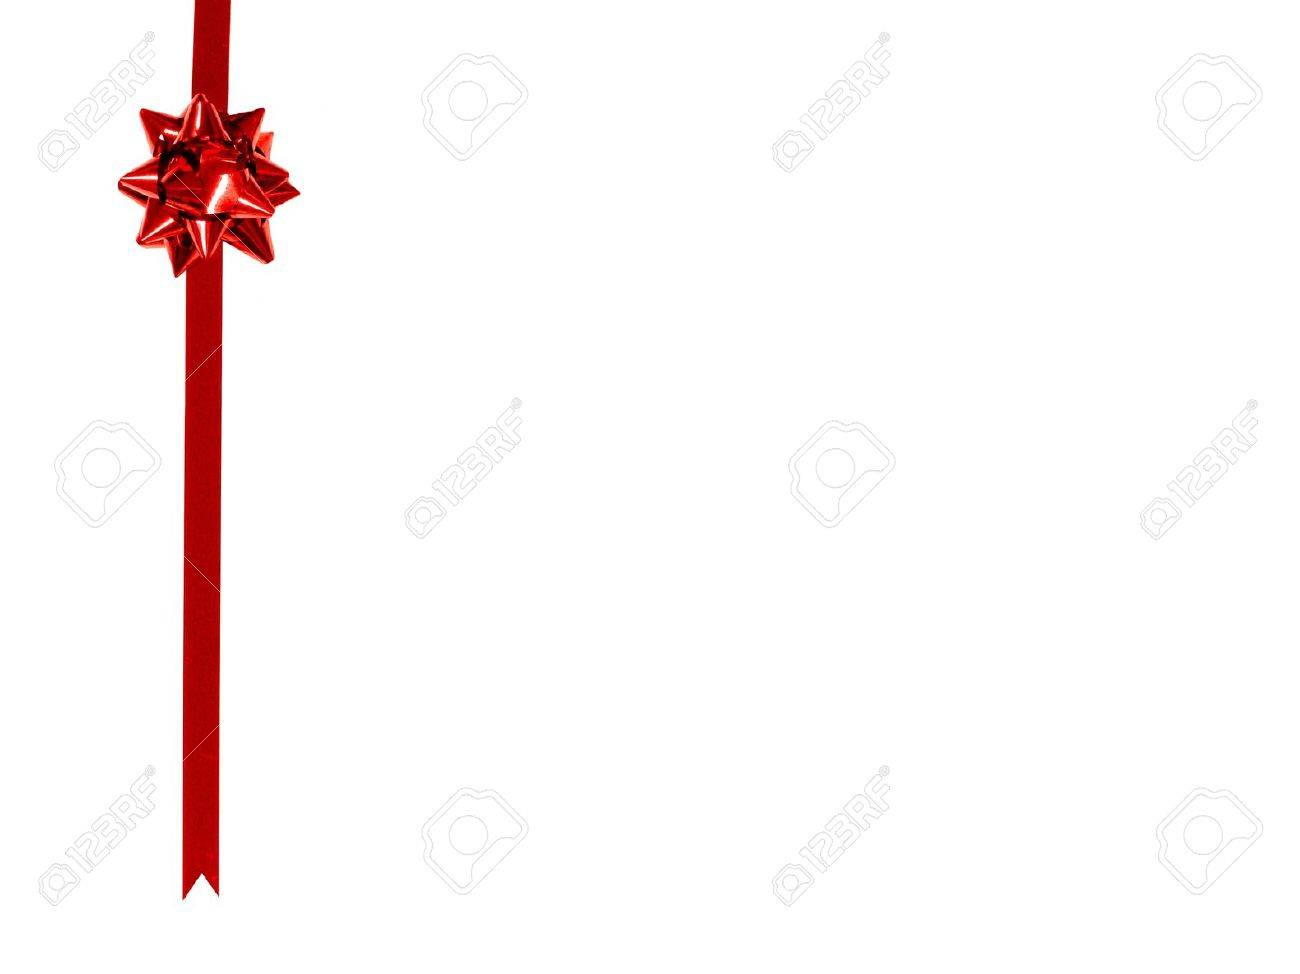 White Backgrounds With Colorful Borders Red Gift Bow and Ribbon Border